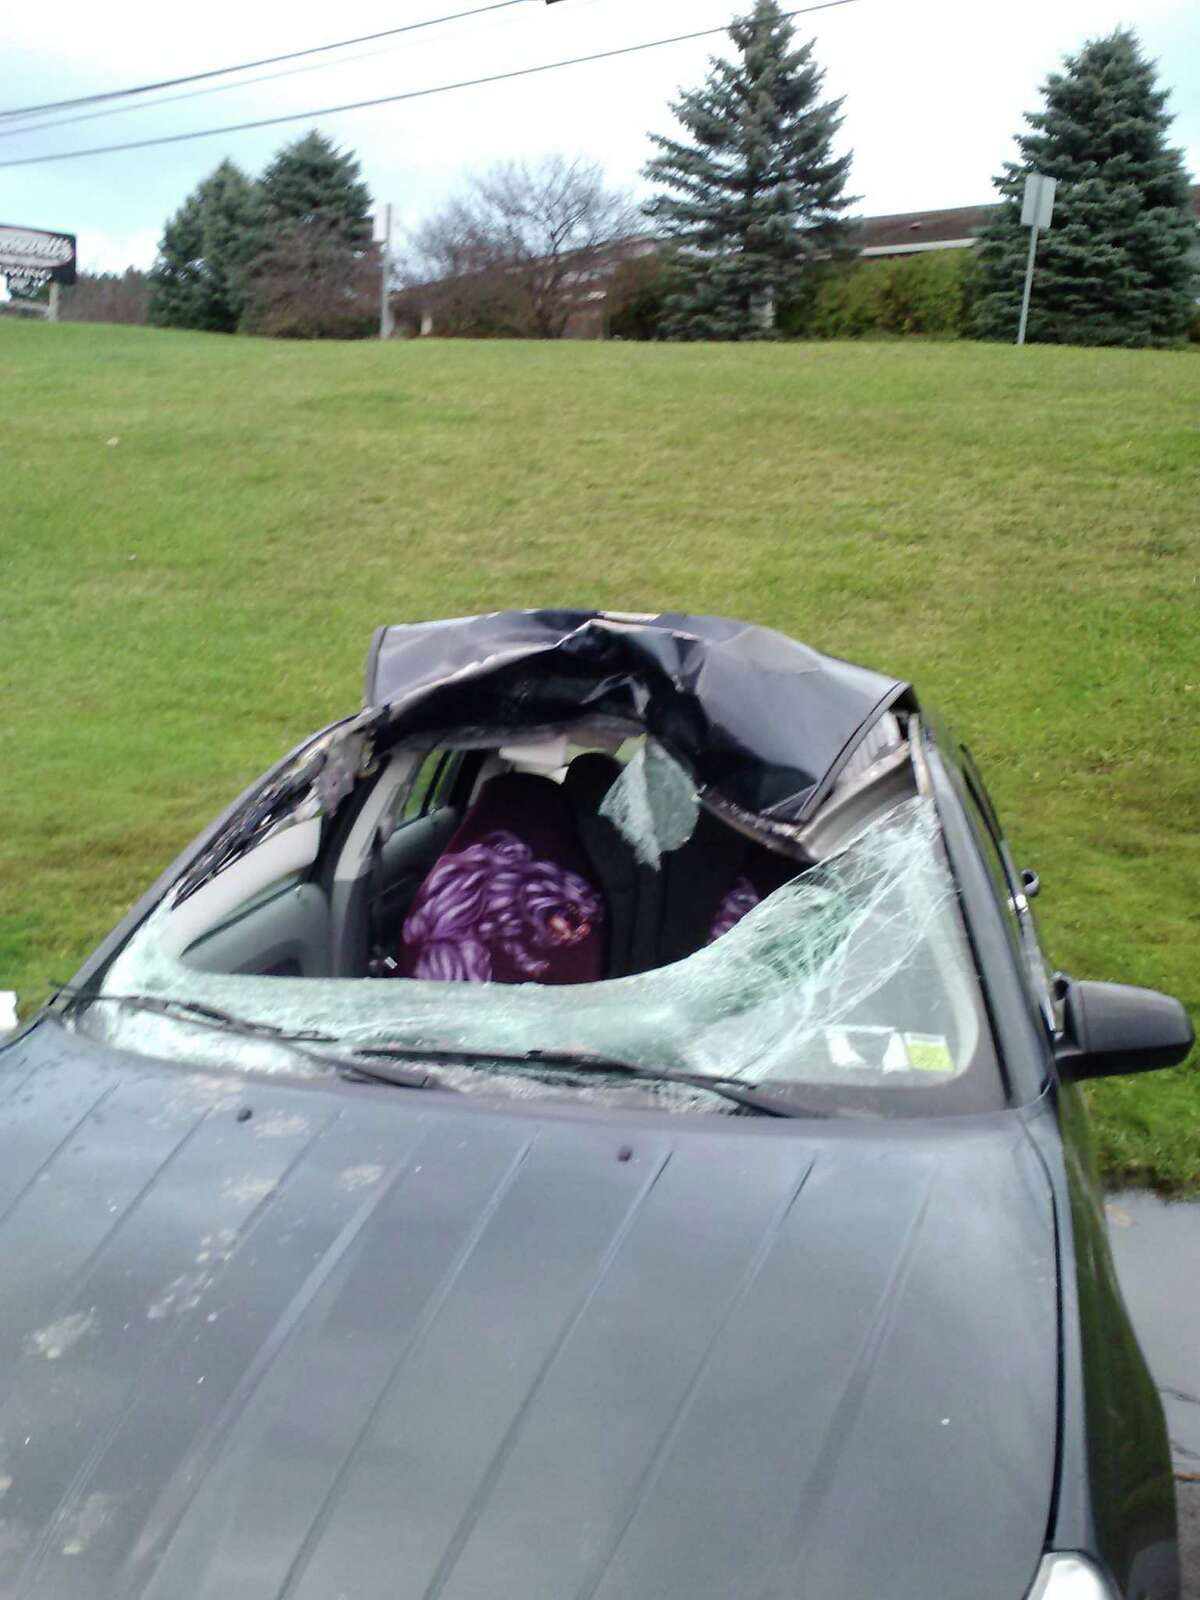 Damage to a car after a deer collision on Saturday, Oct. 25, 2014, in Cobleskill. (Photo provided by Schoharie County Sheriff's Office)